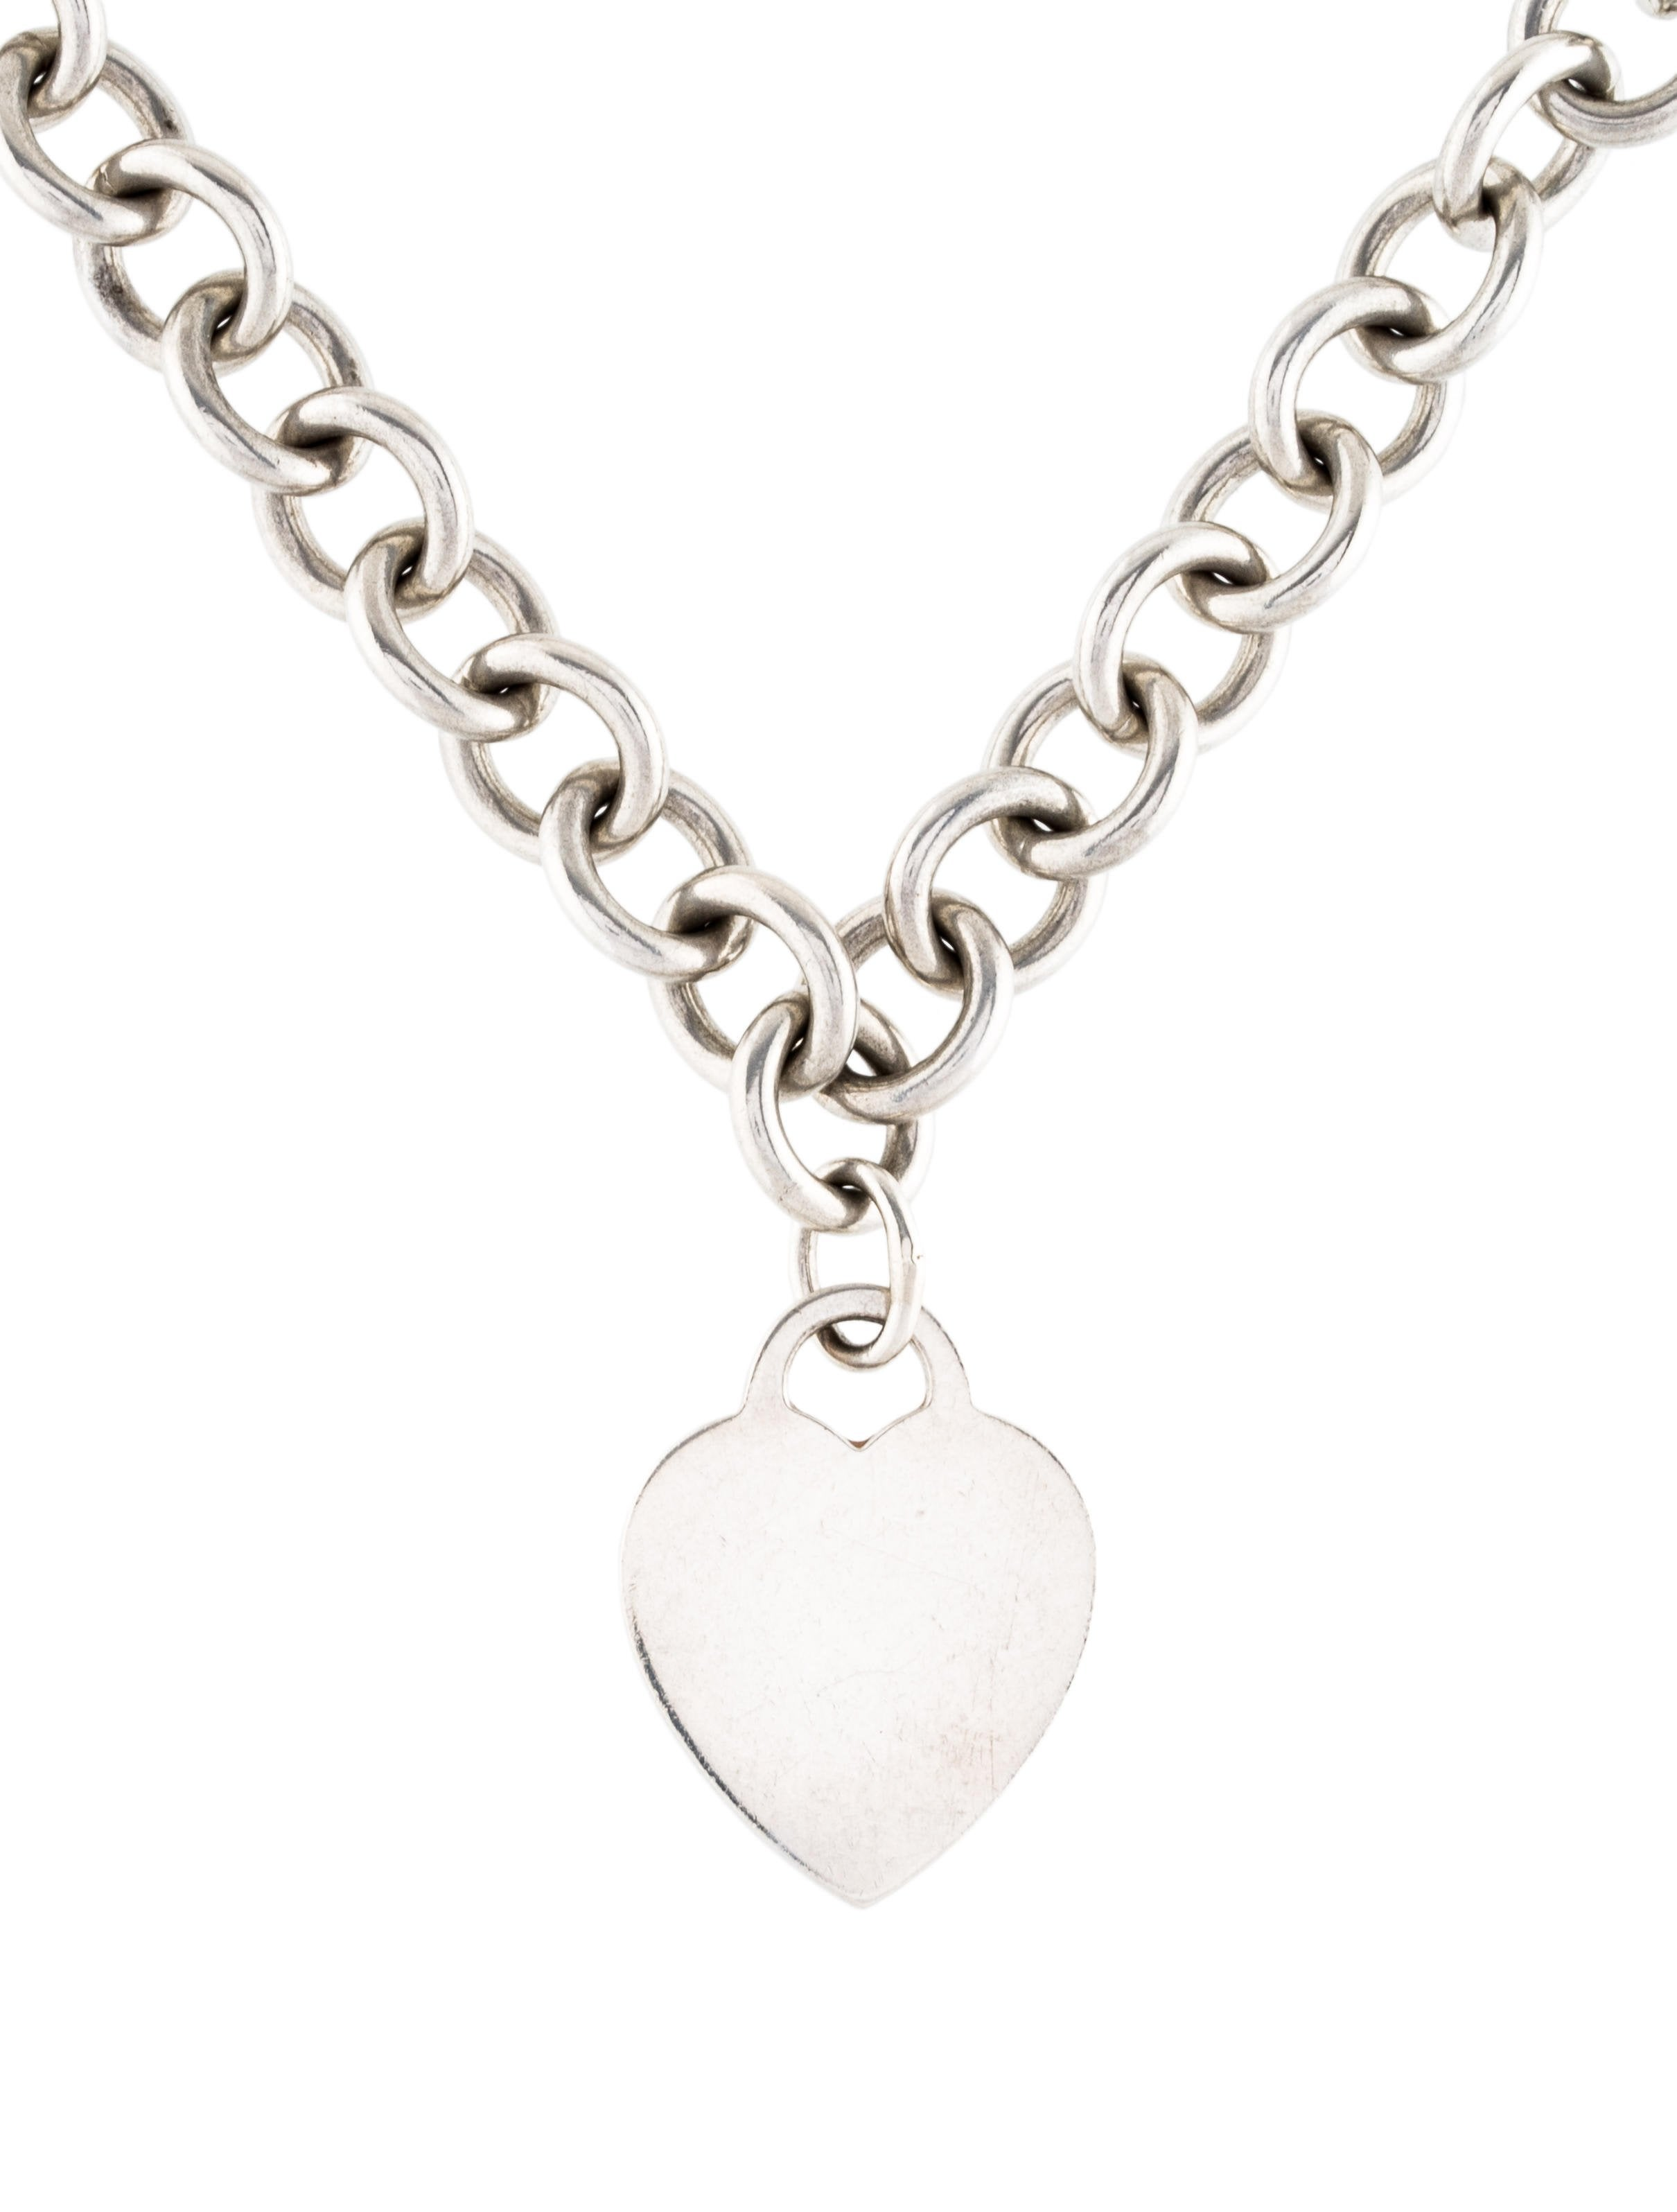 Tiffany co heart tag pendant necklace necklaces tif72922 heart tag pendant necklace aloadofball Image collections